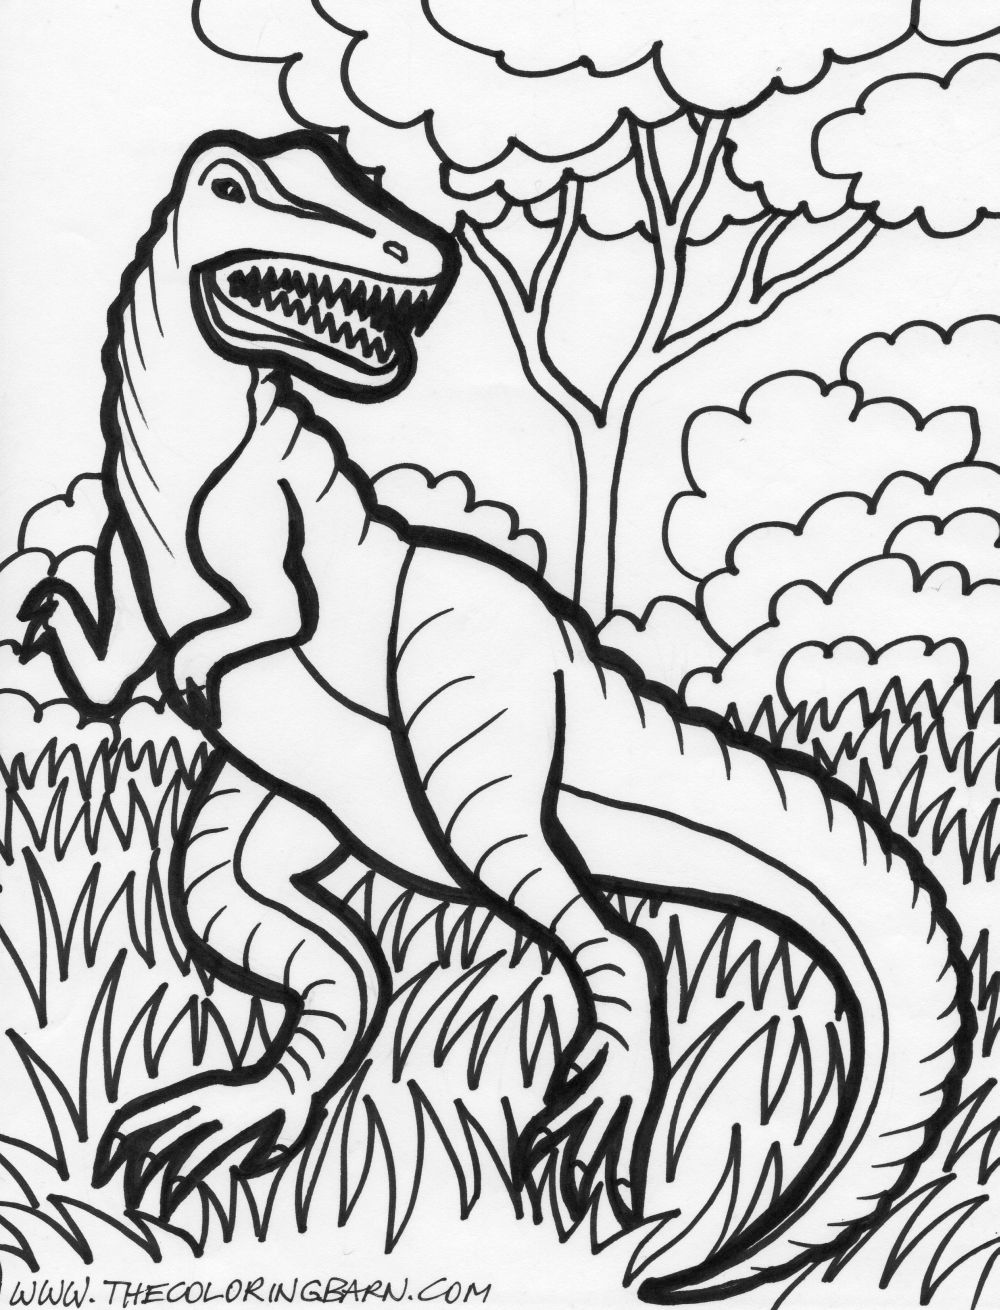 Printable coloring pages dinosaurs - Free Printable Coloring Pages Of Dinosaurs Beautiful Coloring Pages